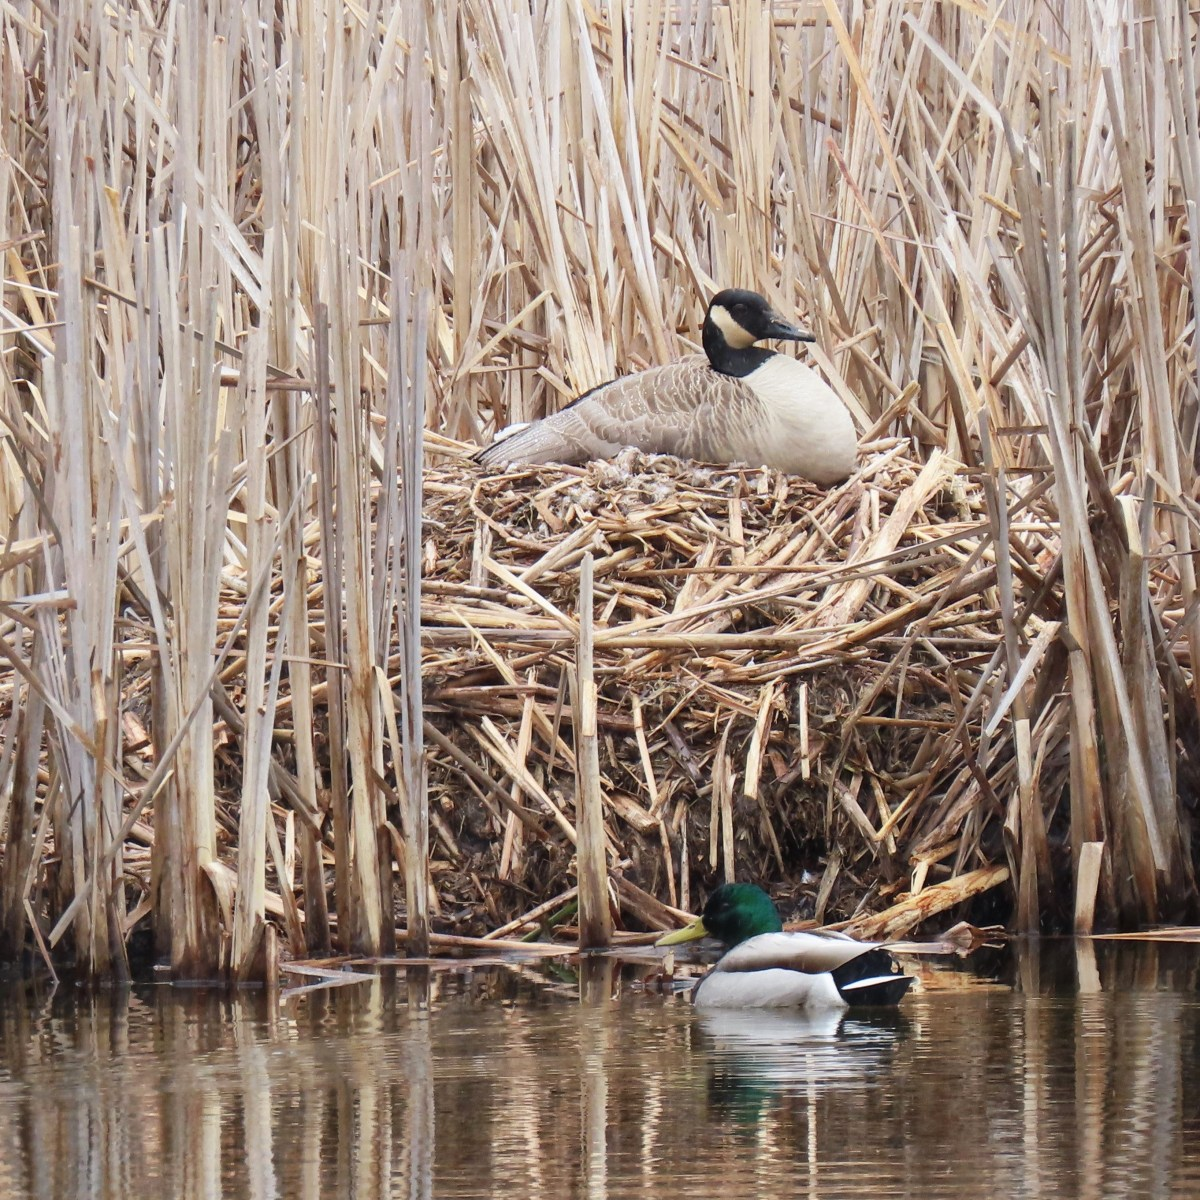 A goose sits on a nest in the reeds while a mallard duck swims in front of it